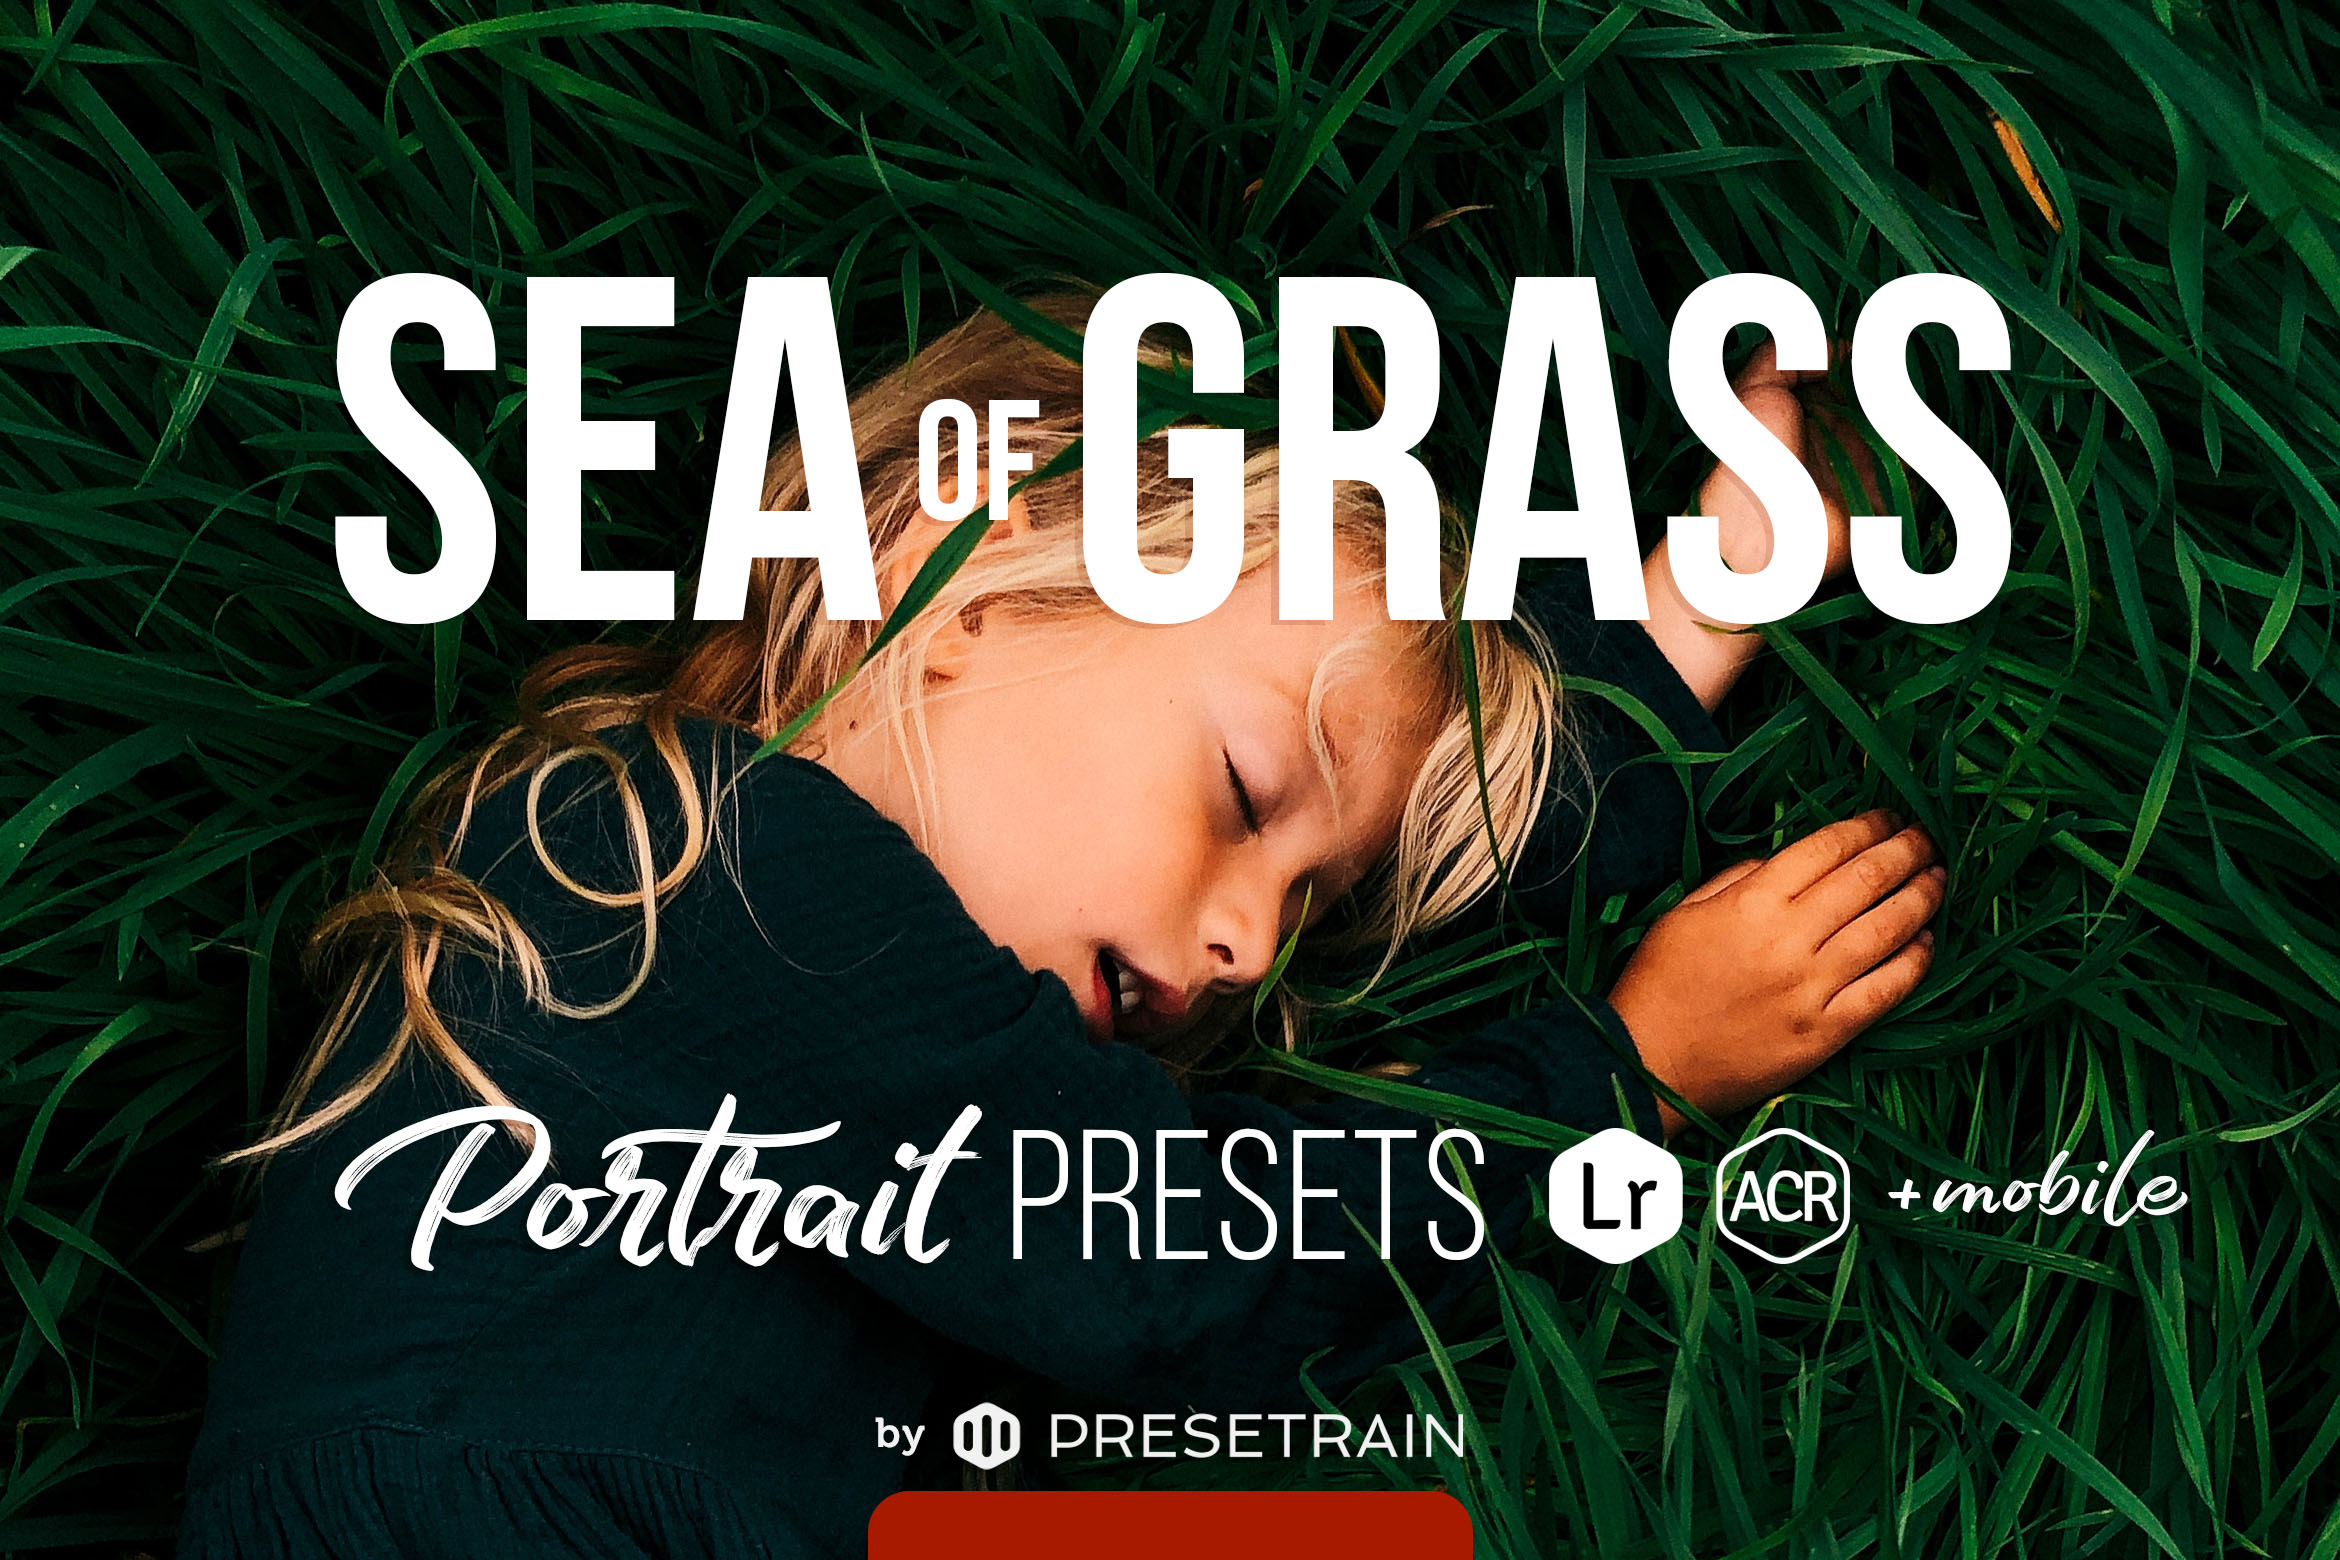 Sea of Grass Presets by Alexander Kuzmin